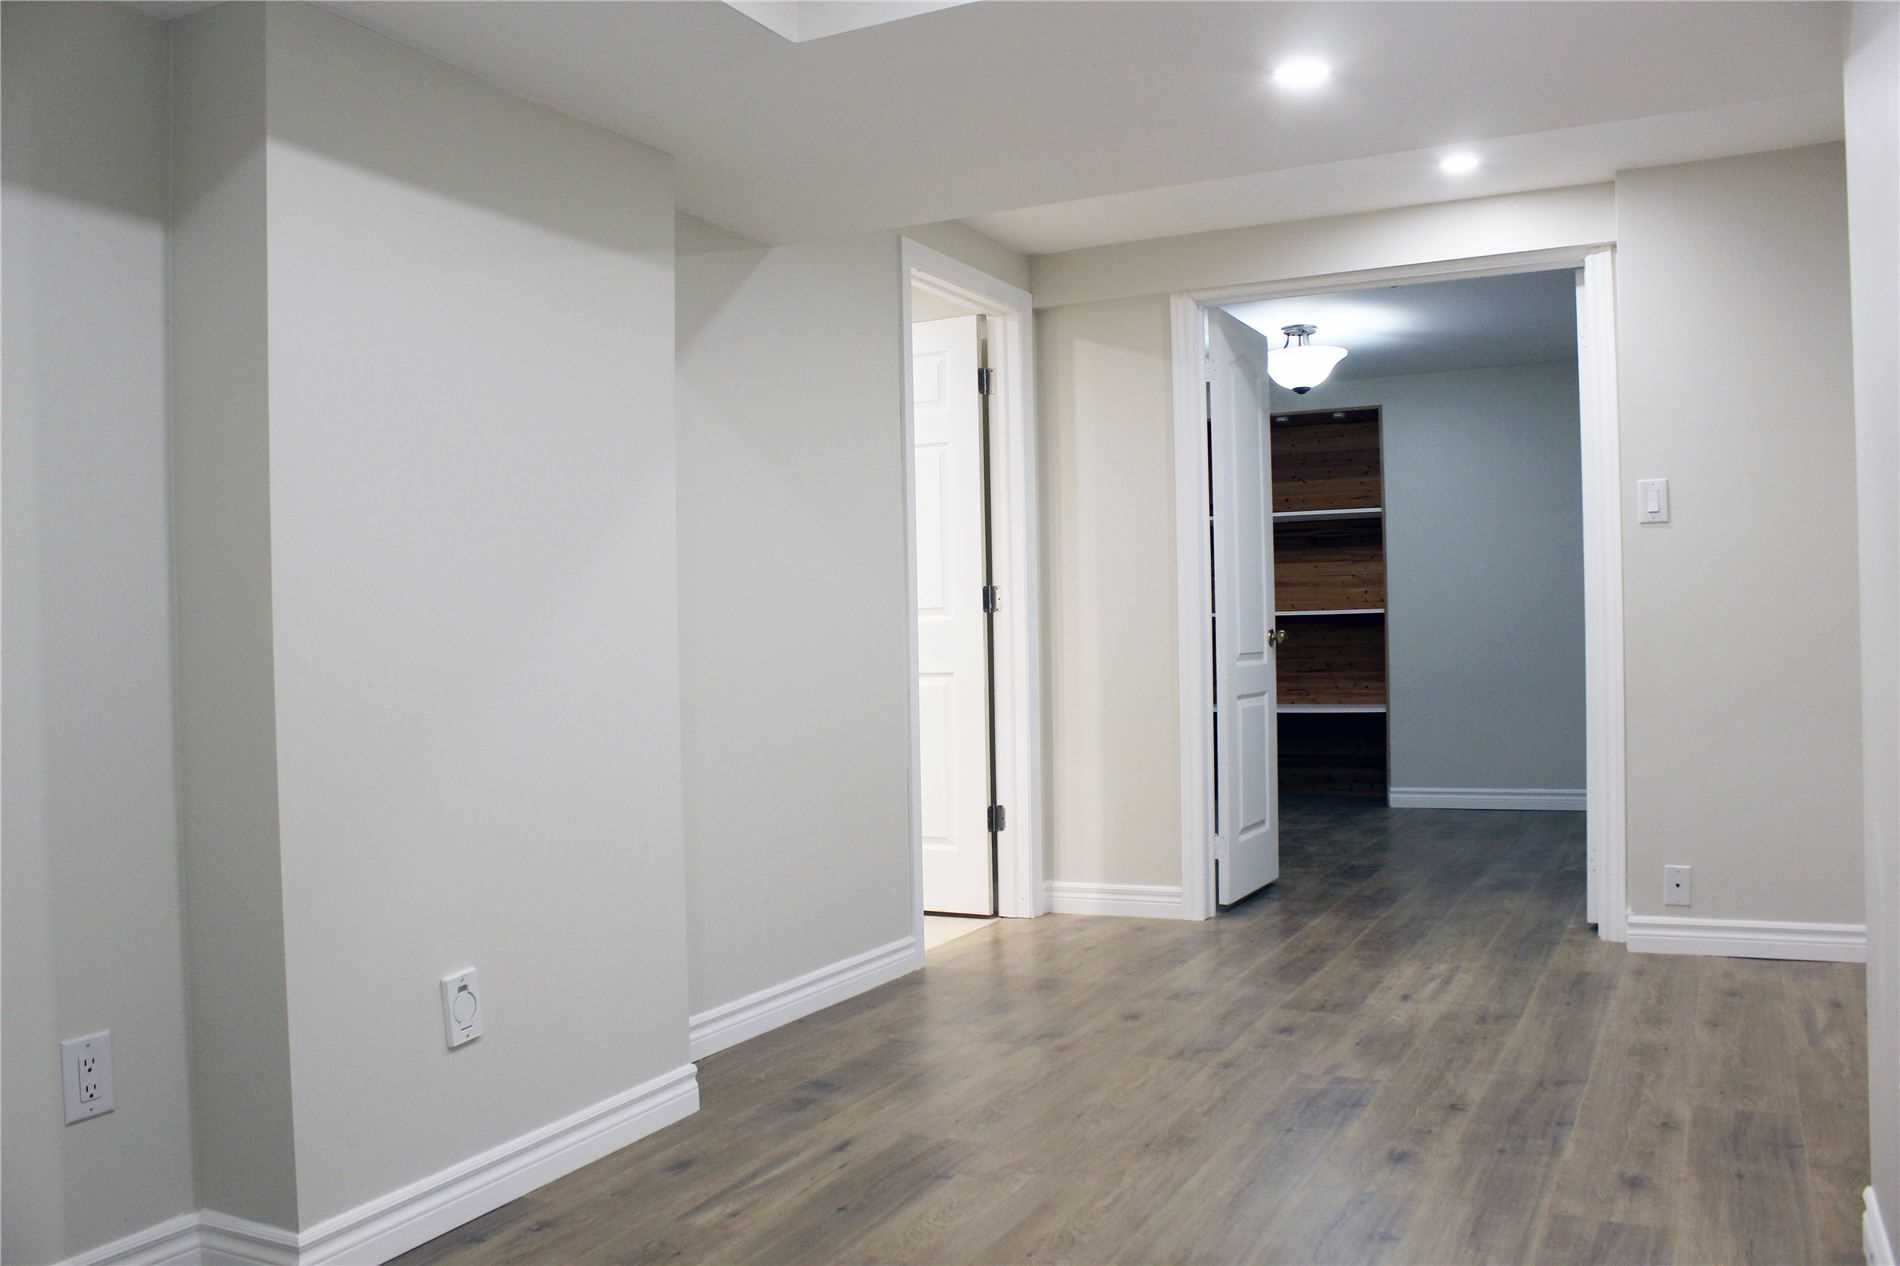 Newly Finished Basement Apartment, Never Lived. Ideal For A Quiet, Professional Single. Separate Entrance, Ensuite Washer & Dryer, Large Bedroom With Big Window. Steps To Renowned Schools And Community Centre, Beautiful Park With Trails, Golf Course, Yacht Club. Close Proximity To Go Station. Easy Access To Highway. Hurry, It Won't Last Long!